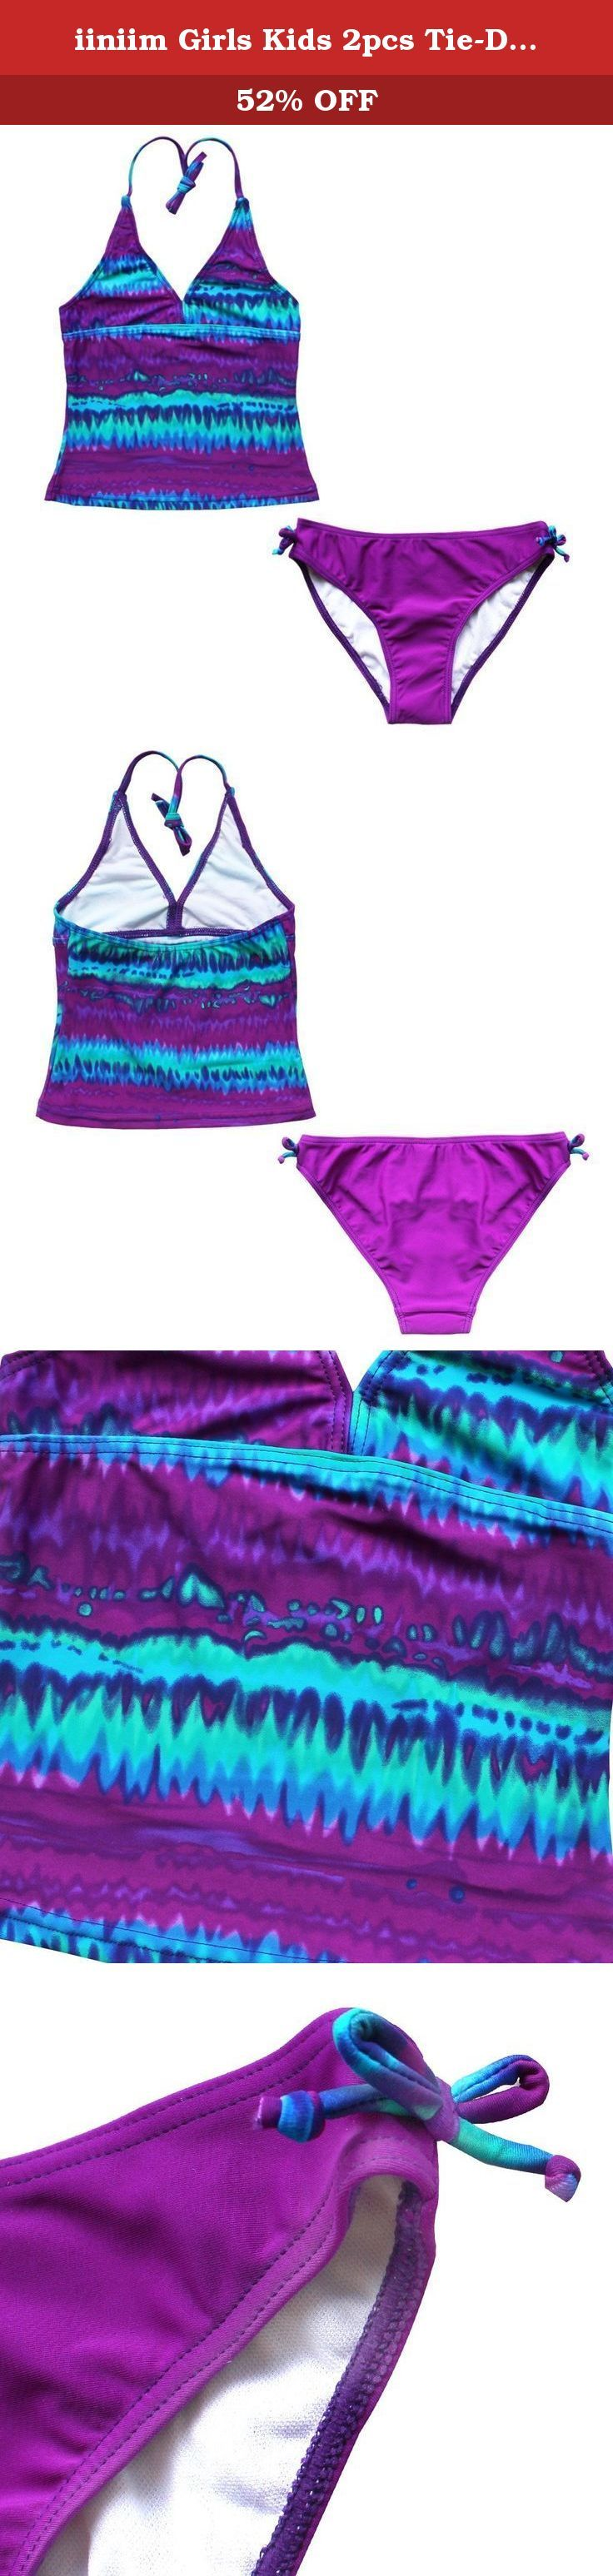 "iiniim Girls Kids 2pcs Tie-Dye Halter Tankini Top Swimsuits Bathing Suits Purple 12. Set Include: 1pc top, 1pc bottom Condition: New with tags Material: 80% Polyamide, 20% Elasthanne Color: (As pictures shown) Recommended Size: 8: Chest 21.0""-25.0""/53-63cm, Top Length 14.0""/36cm, Bottom Waist 23.0""-27.5""/58-70cm, Bottom Length 7.5""/19cm 10: Chest 23.0""-27.0""/58-68cm, Top Length 15.5""/40cm, Bottom Waist 24.5""-28.5""/62-72cm, Bottom Length 8.0""/20cm 12: Chest 24.5""-28.5""/62-72cm, Top Length..."